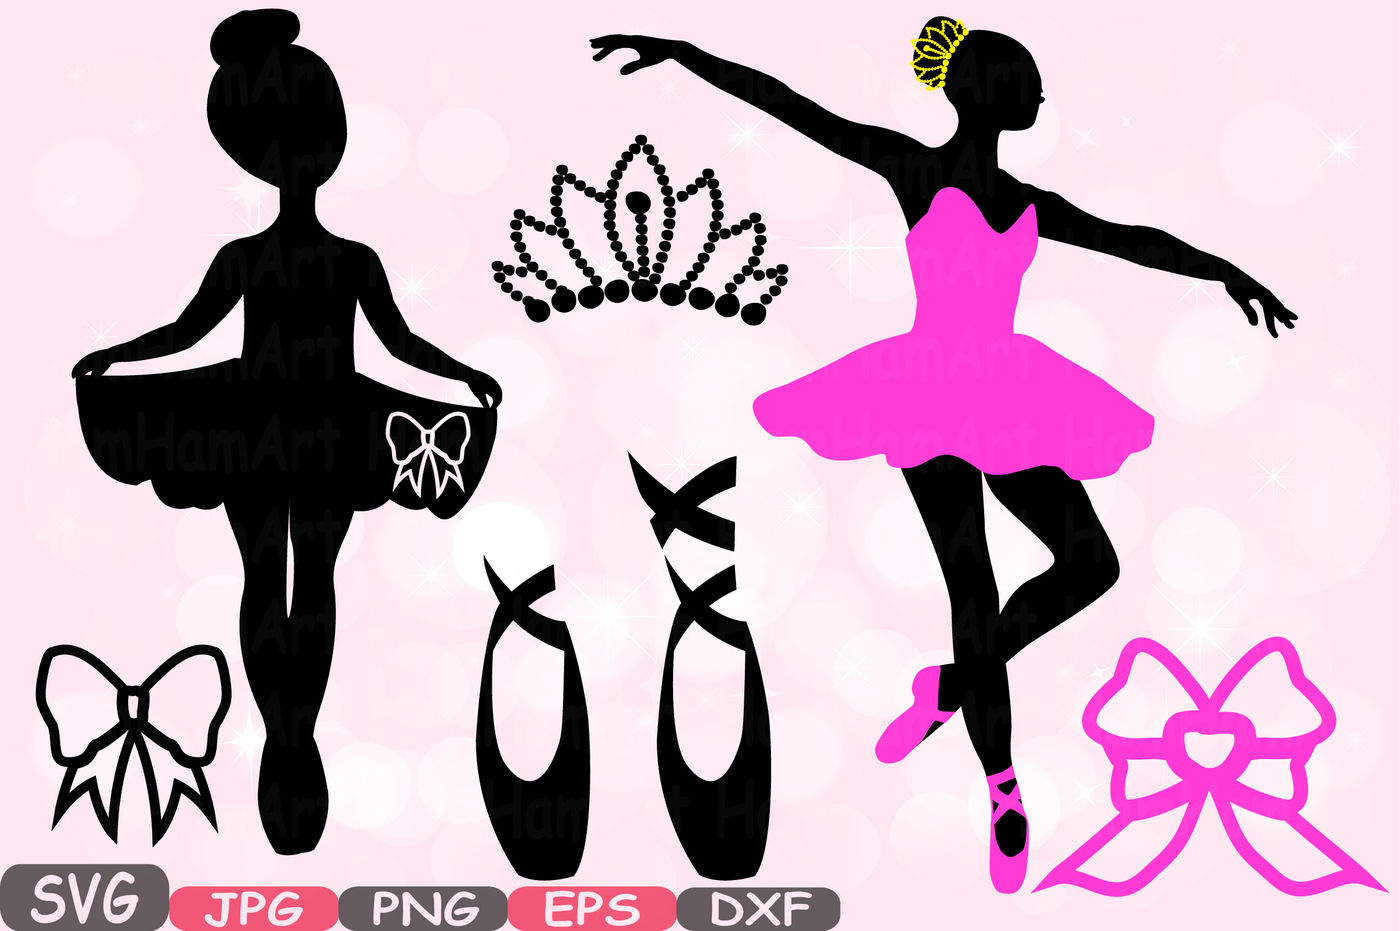 Ballerina clipart svg clipart download Ballet Ballerina SVG Silhouette Cutting Files sign icons dance ... clipart download